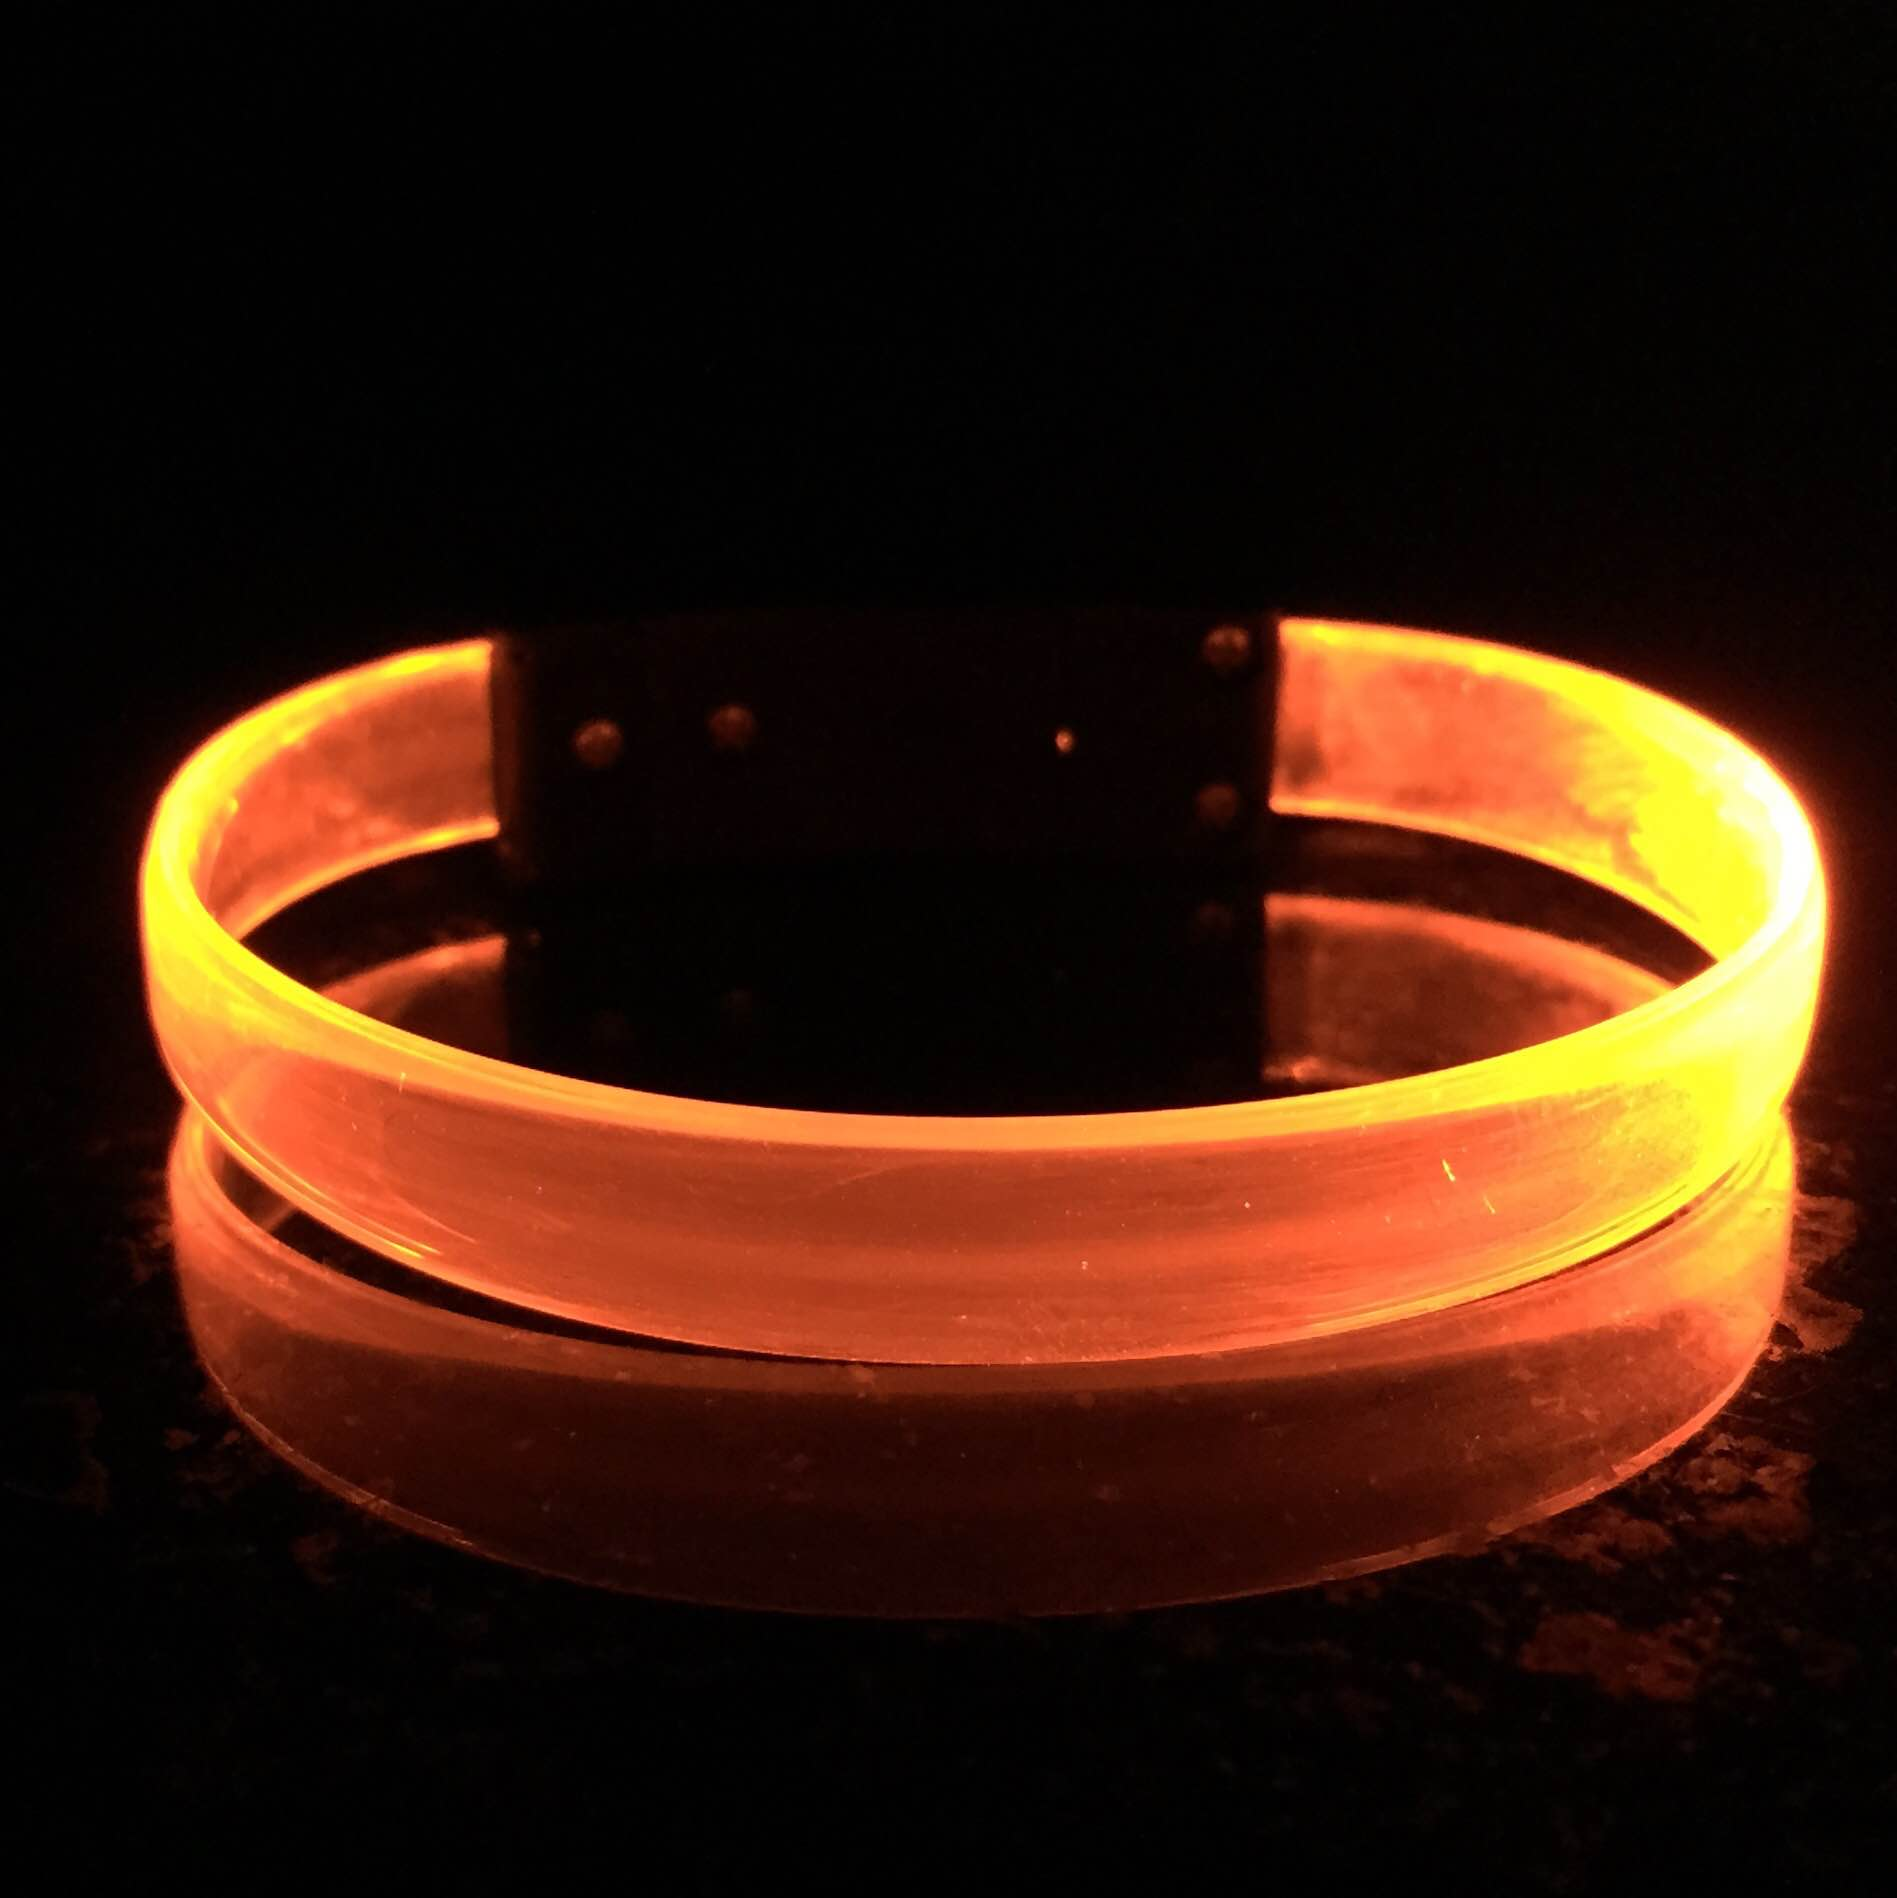 led-wristband-blank-light-up-glow-bracelet-2.jpg